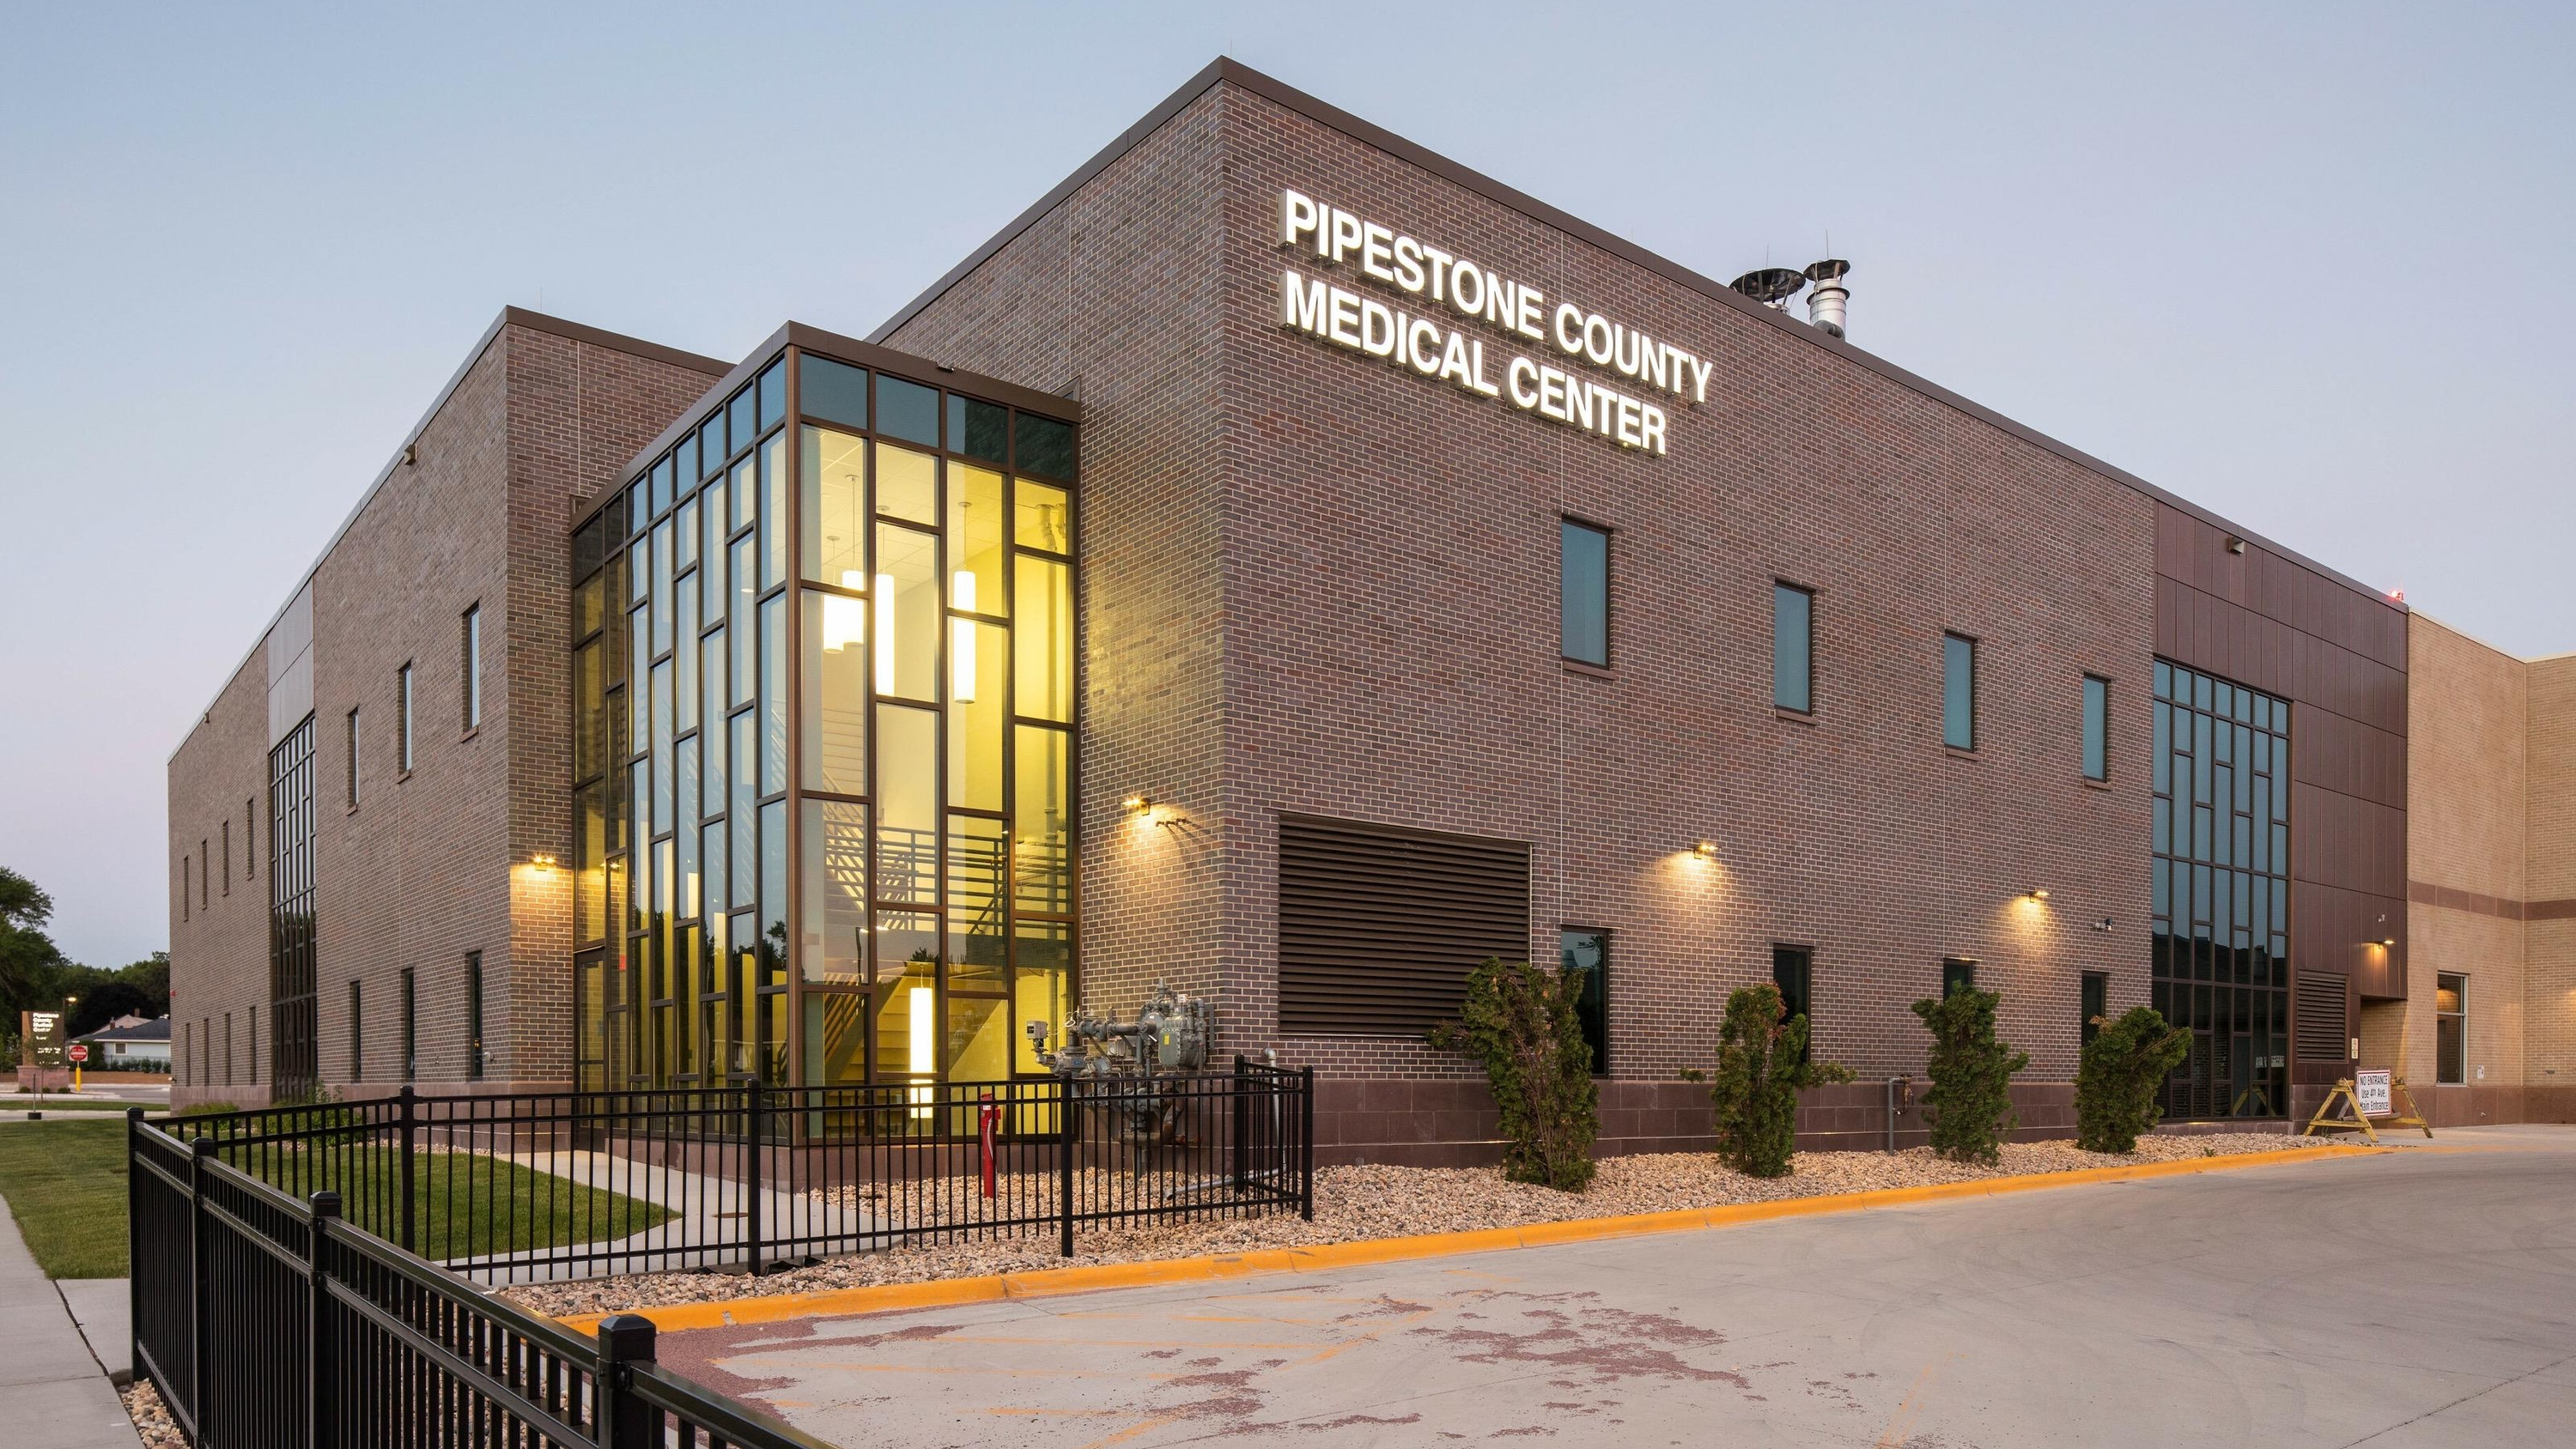 Pipestone County Medical Center2